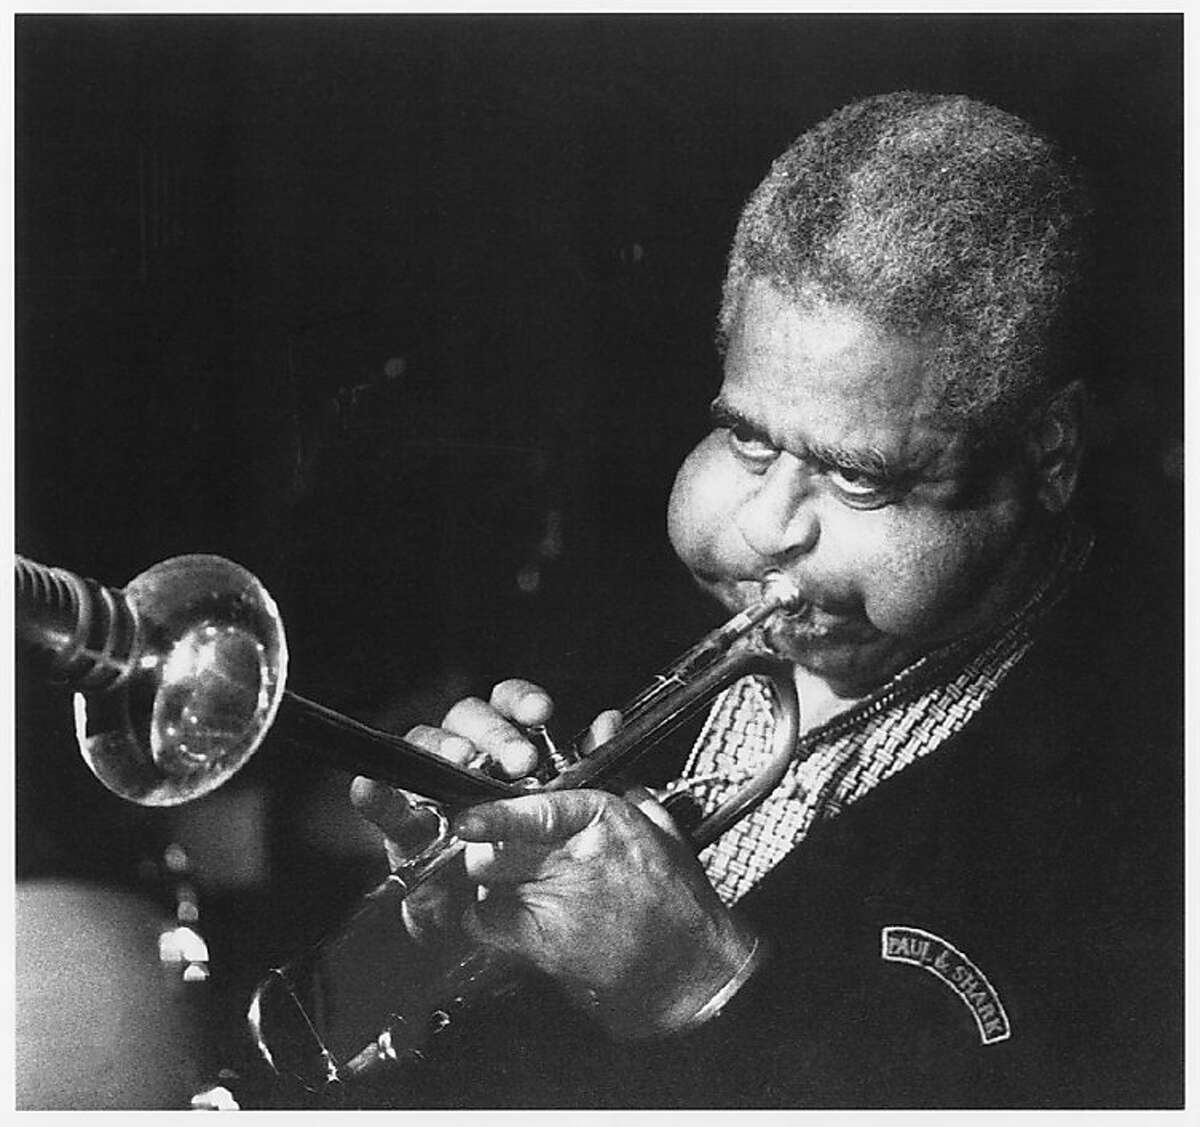 Dizzy Gillespie performing at Yoshi's Oakland in the 80s.